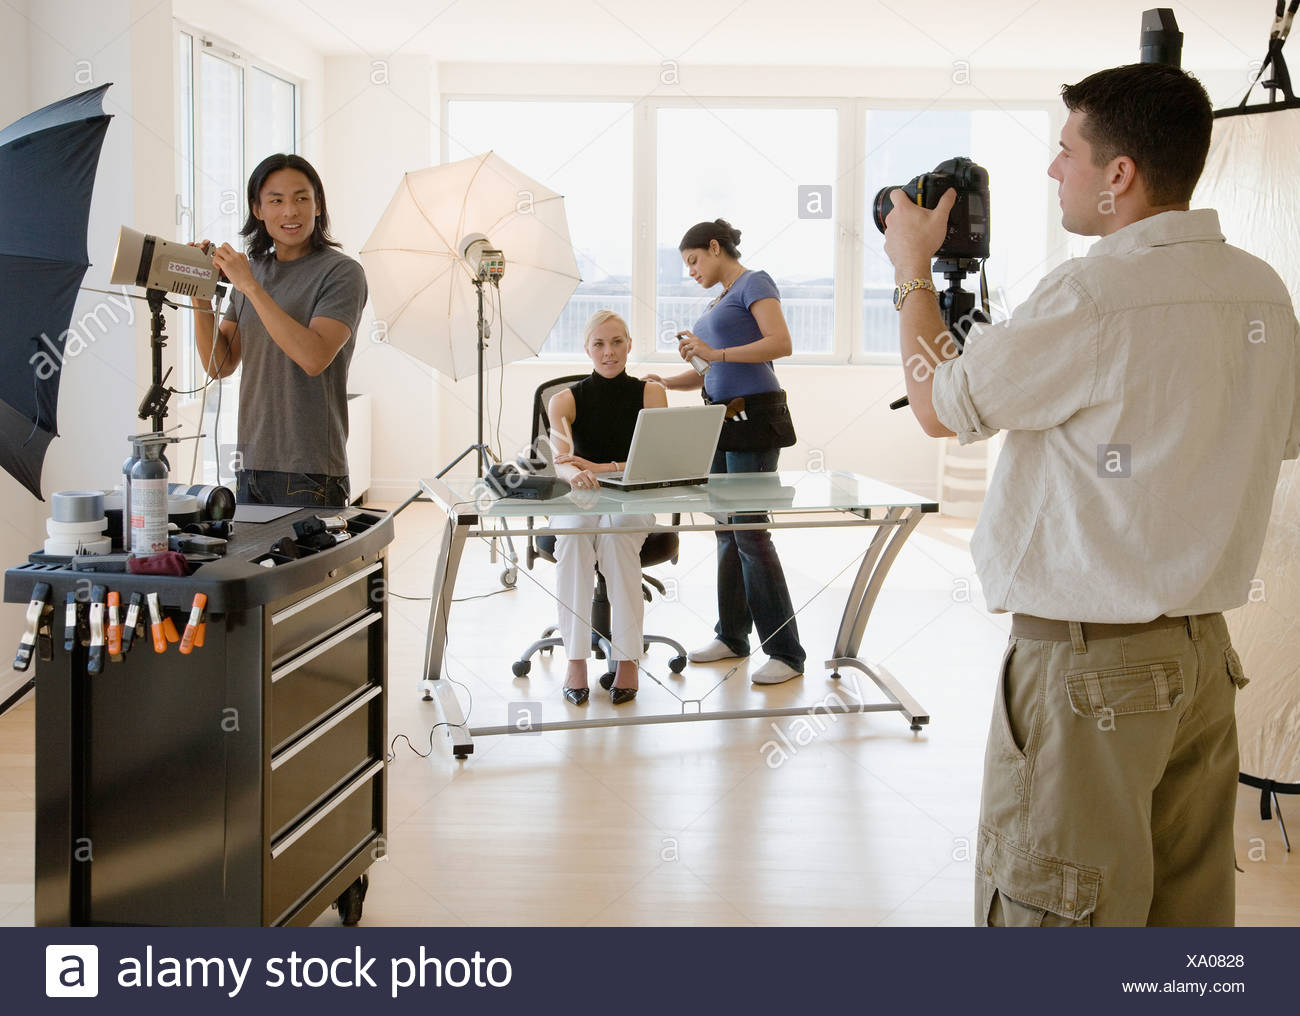 Business photo shoot in studio - Stock Image